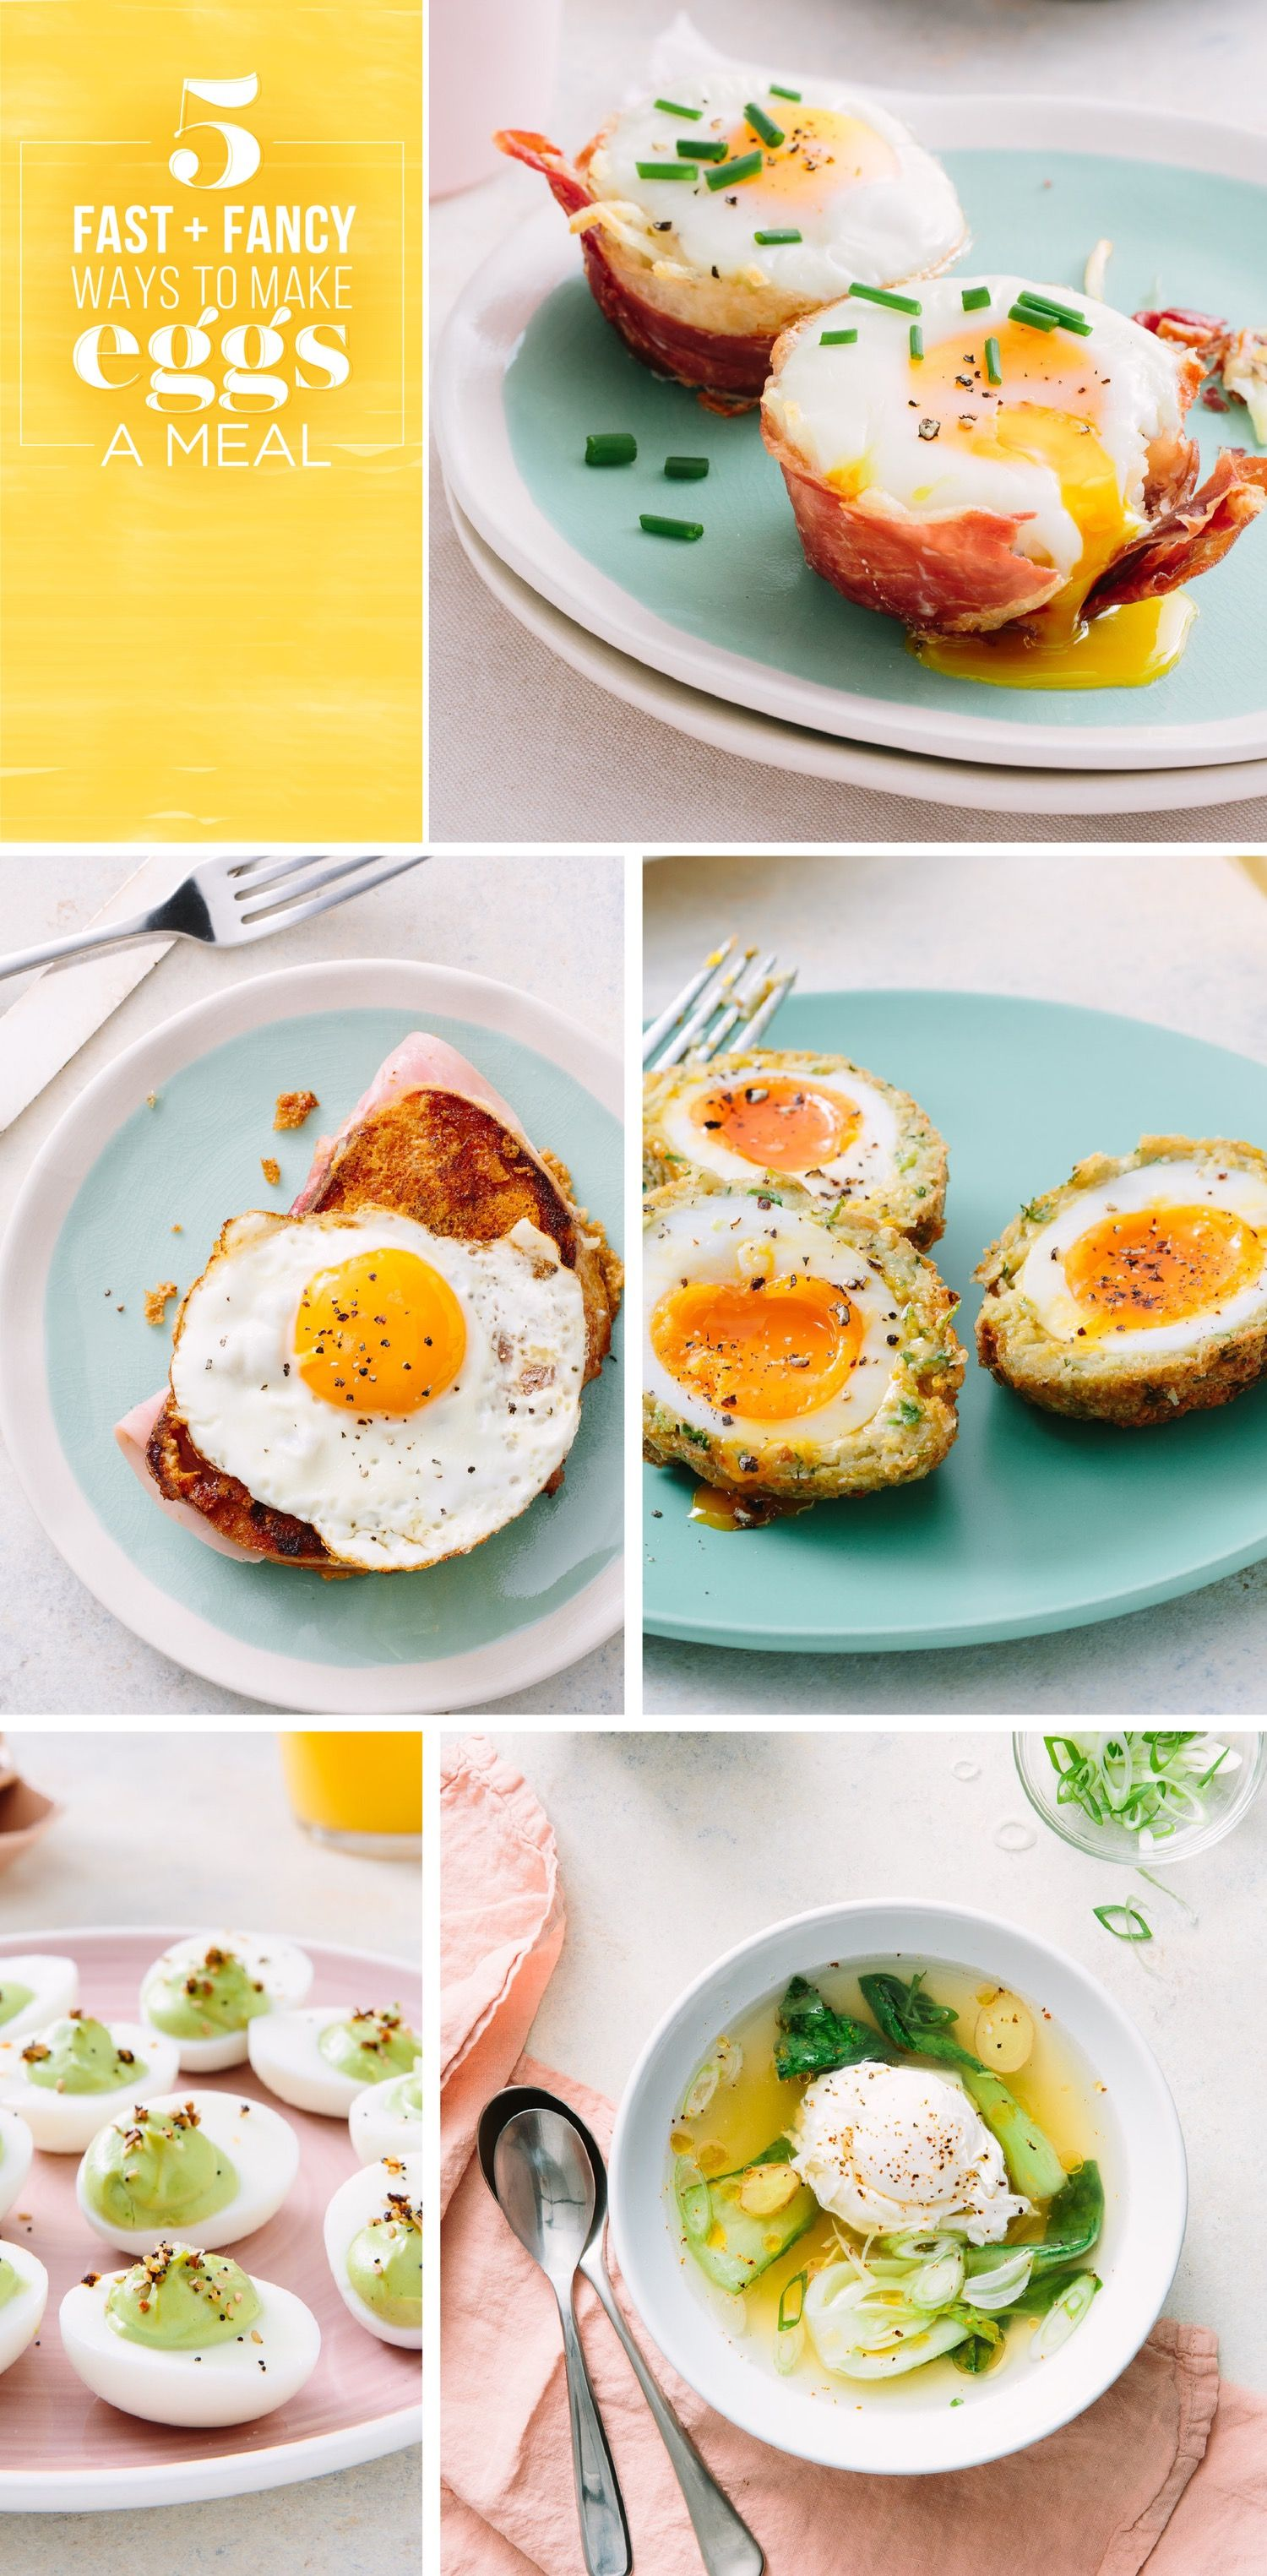 5 Easy Fancy Ways To Make Eggs A Meal Ways To Cook Eggs Vegetarian Breakfast Recipes Ways To Make Eggs